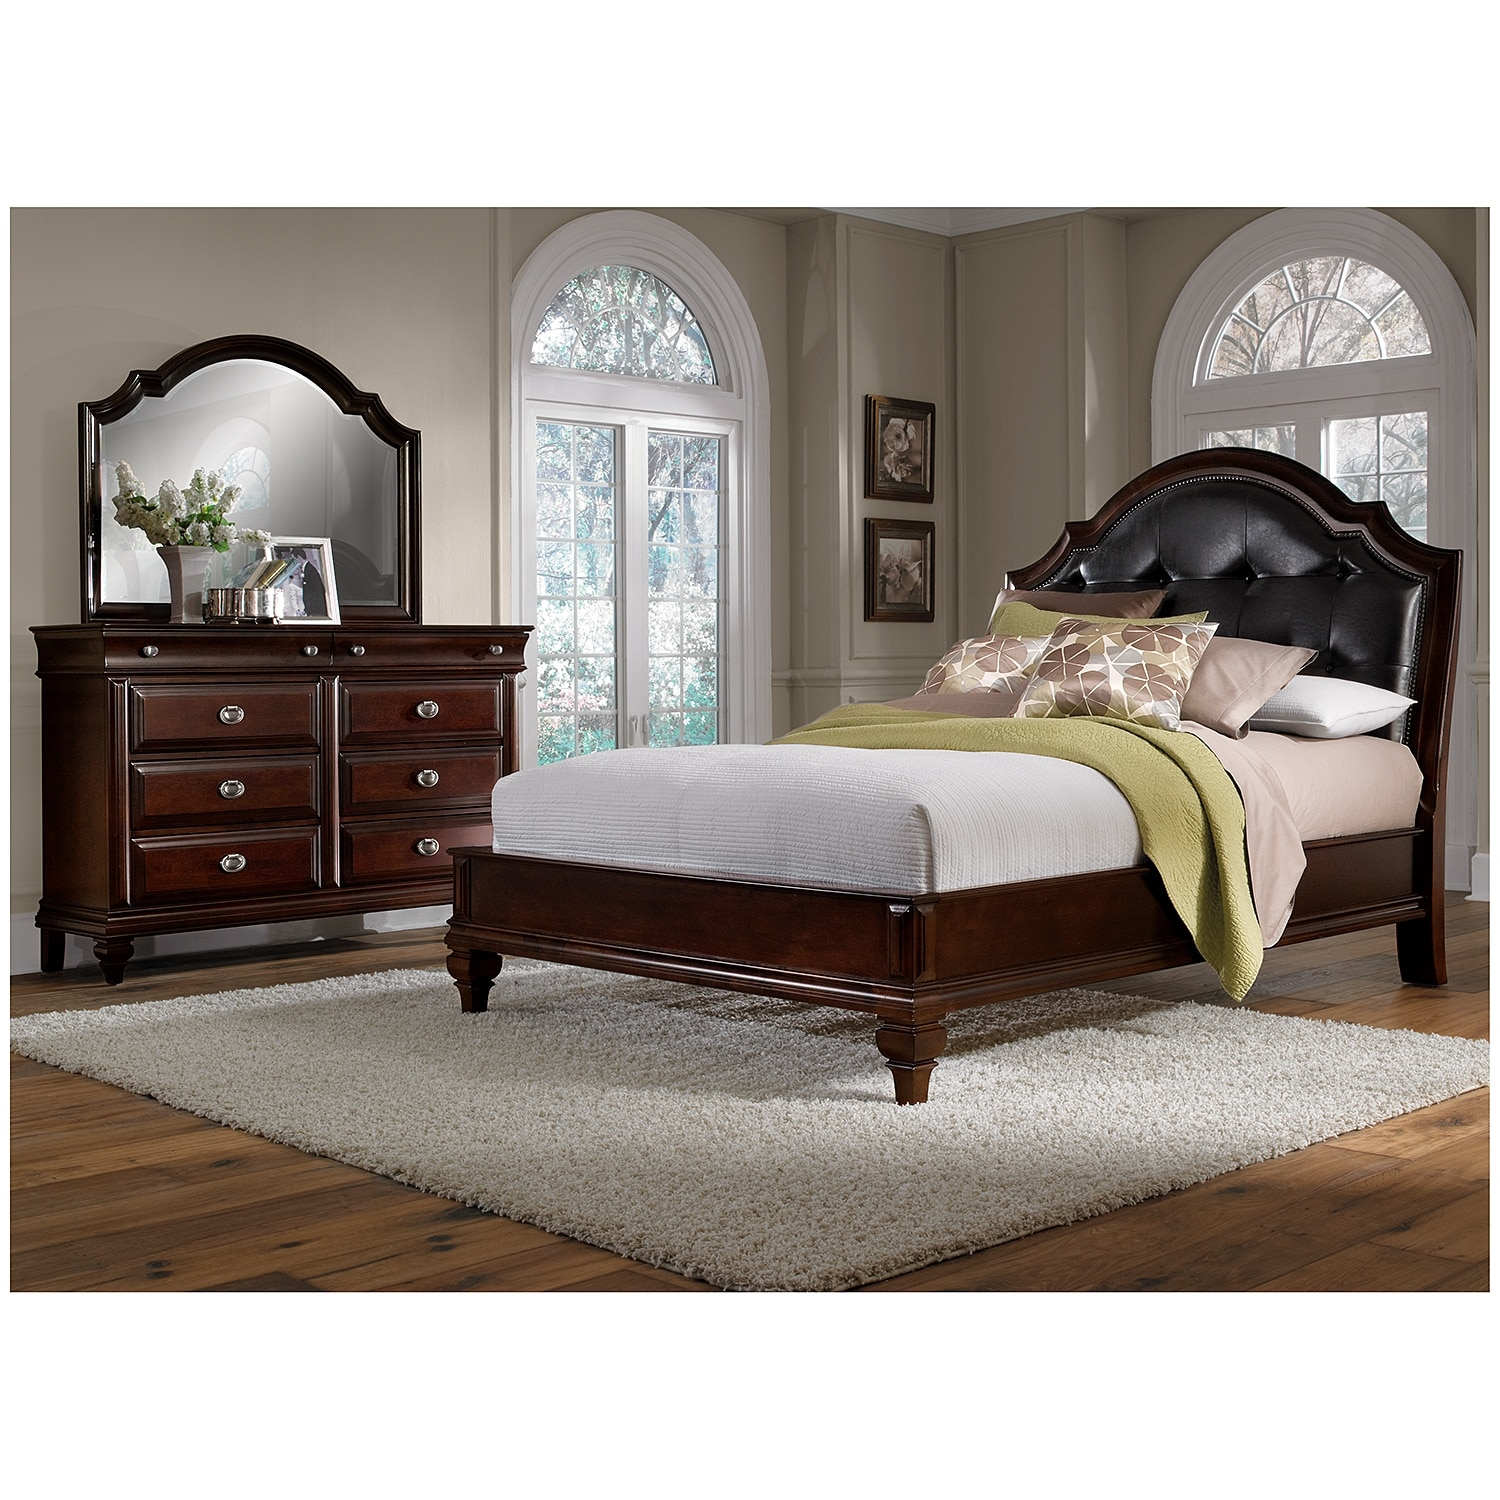 Manhattan 6 Piece Queen Bedroom Set Cherry Value City Furniture